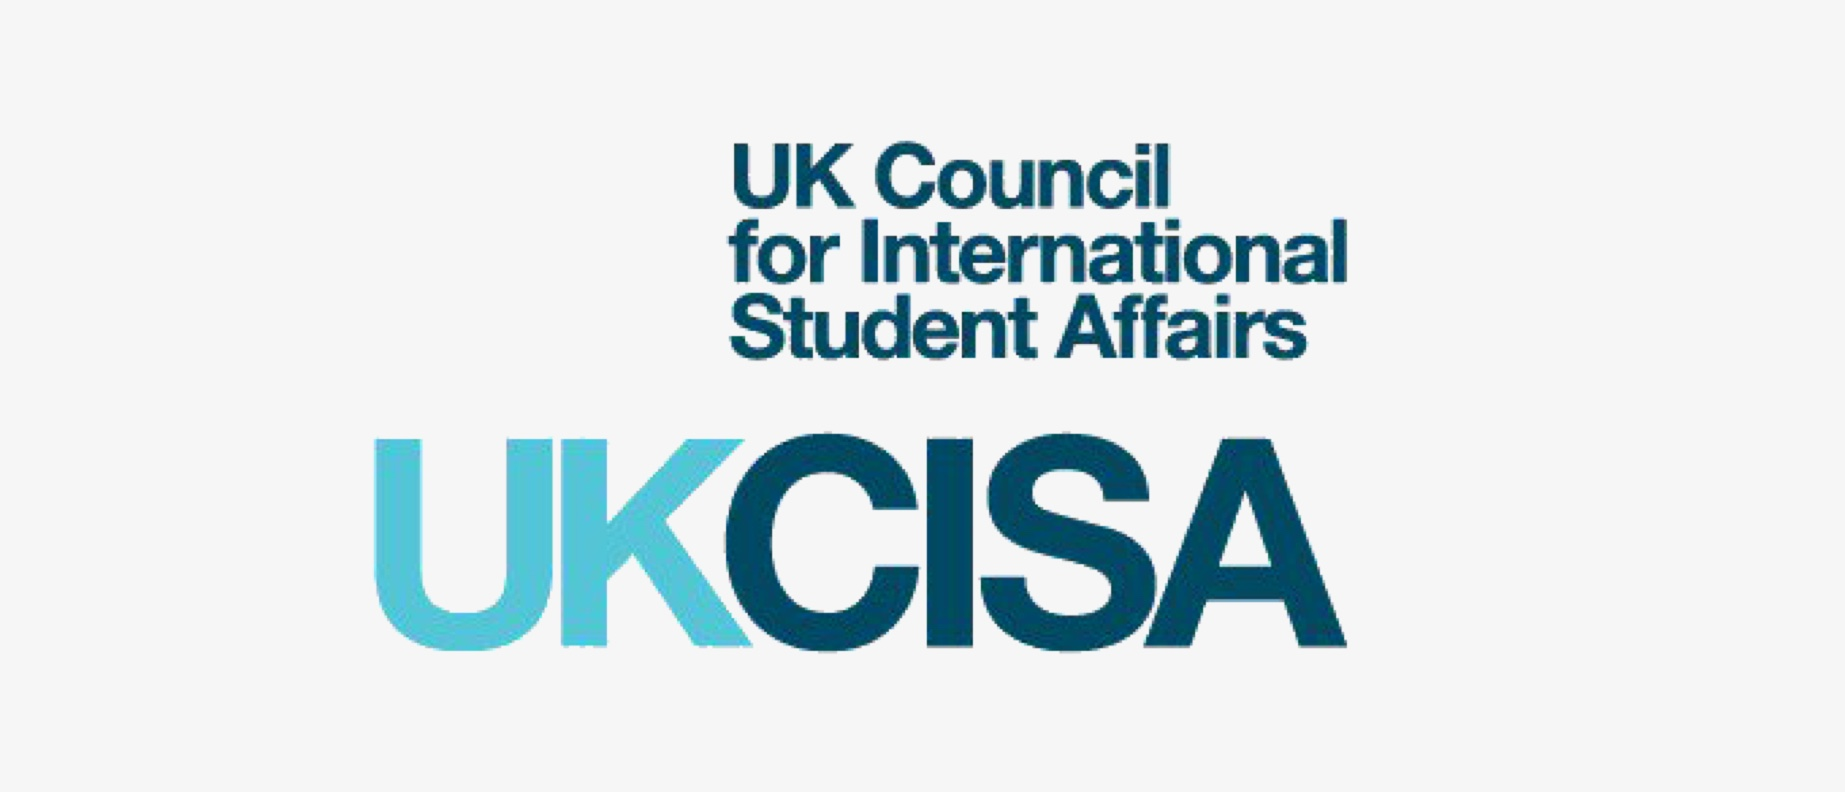 UK council for international student affairs | health and safety in the UK